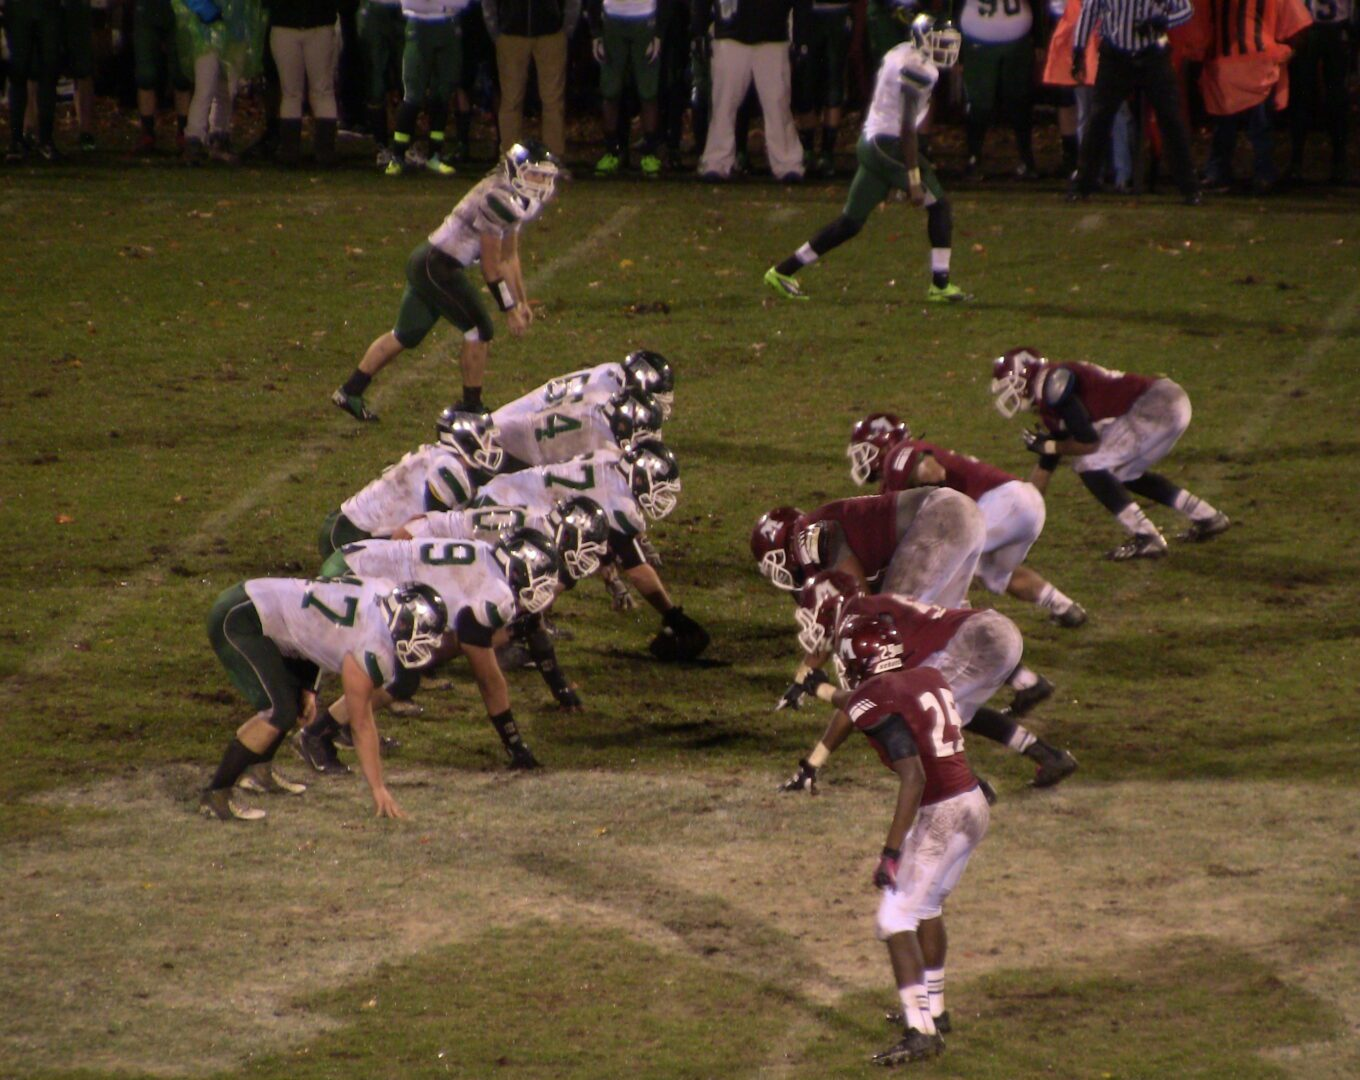 Muskegon Big Reds storm out early, defeat Reeths-Puffer in Division 2 football districts